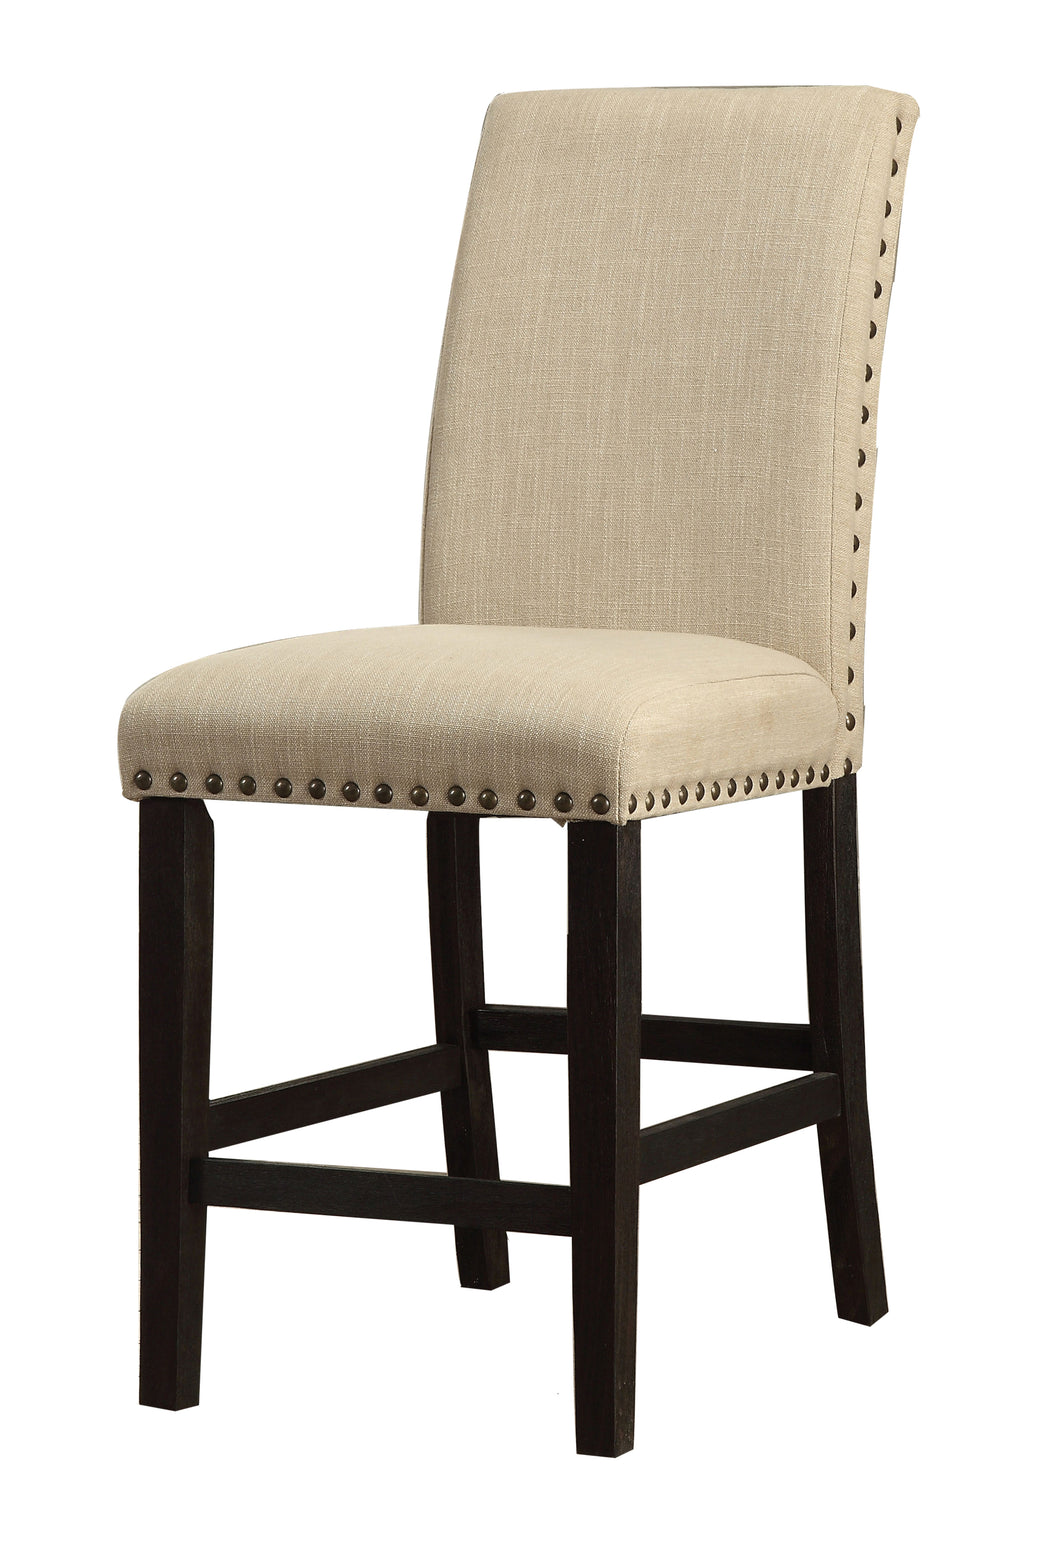 Camille Contemporary Ivory Fabric Counter Height Dining Chair (Set of 2)